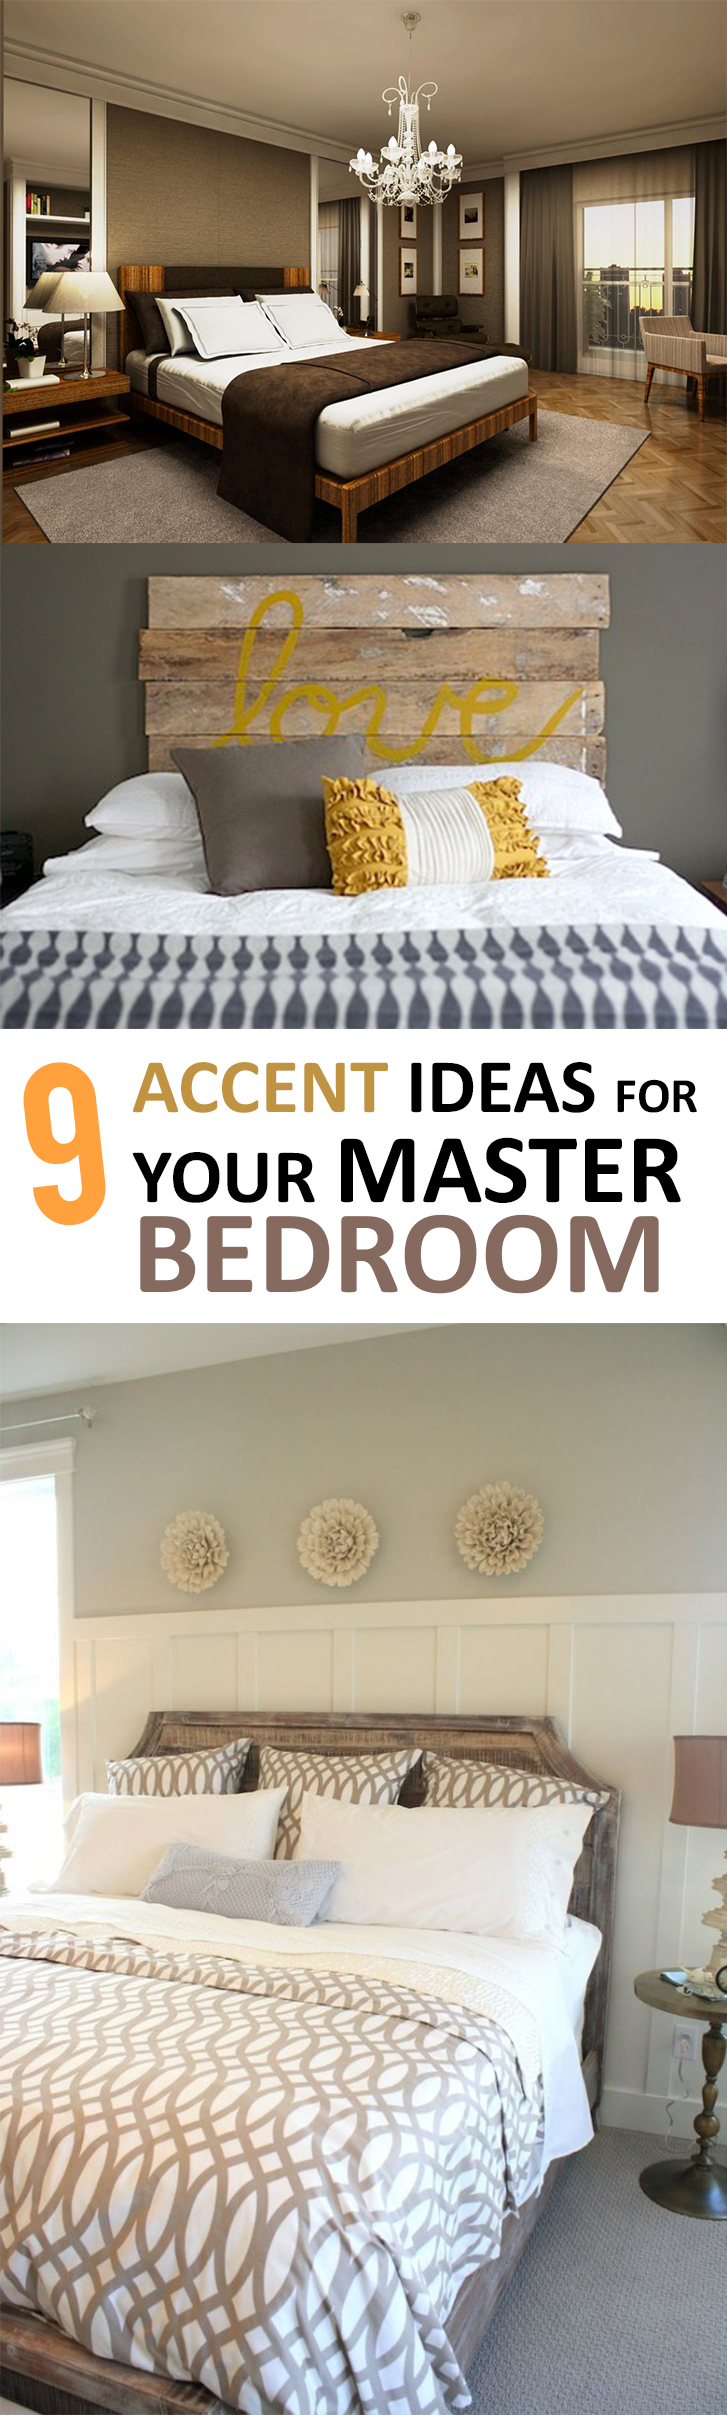 accent ideas for your master bedroom page 9 of 10